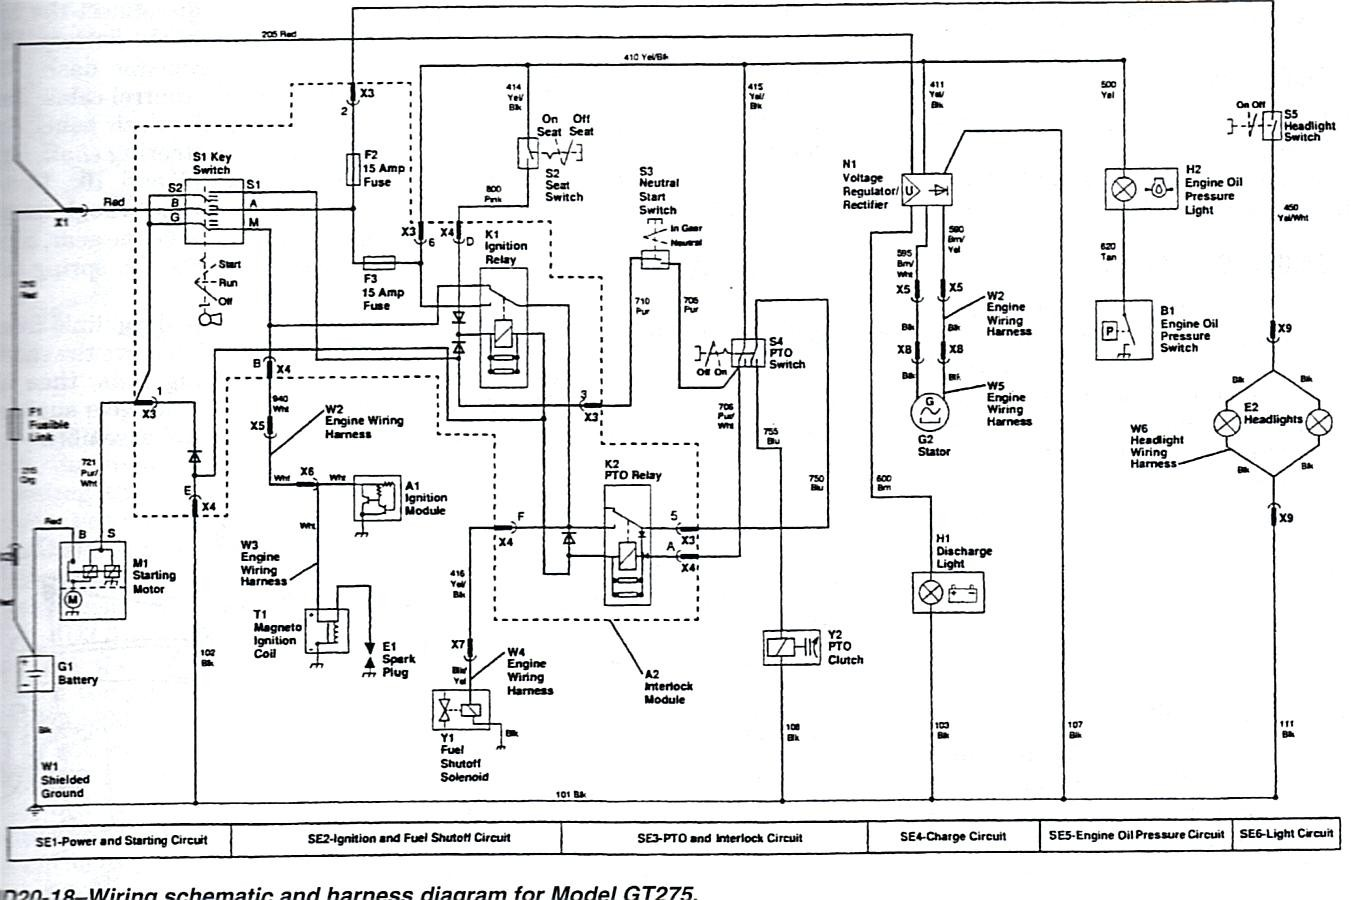 John Deere Excavator Wiring Diagram Circuit Connection Diagram \u2022 1980 John  Deere 310 Backhoe Wiring Diagram John Deere 310 Backhoe Wiring Diagram